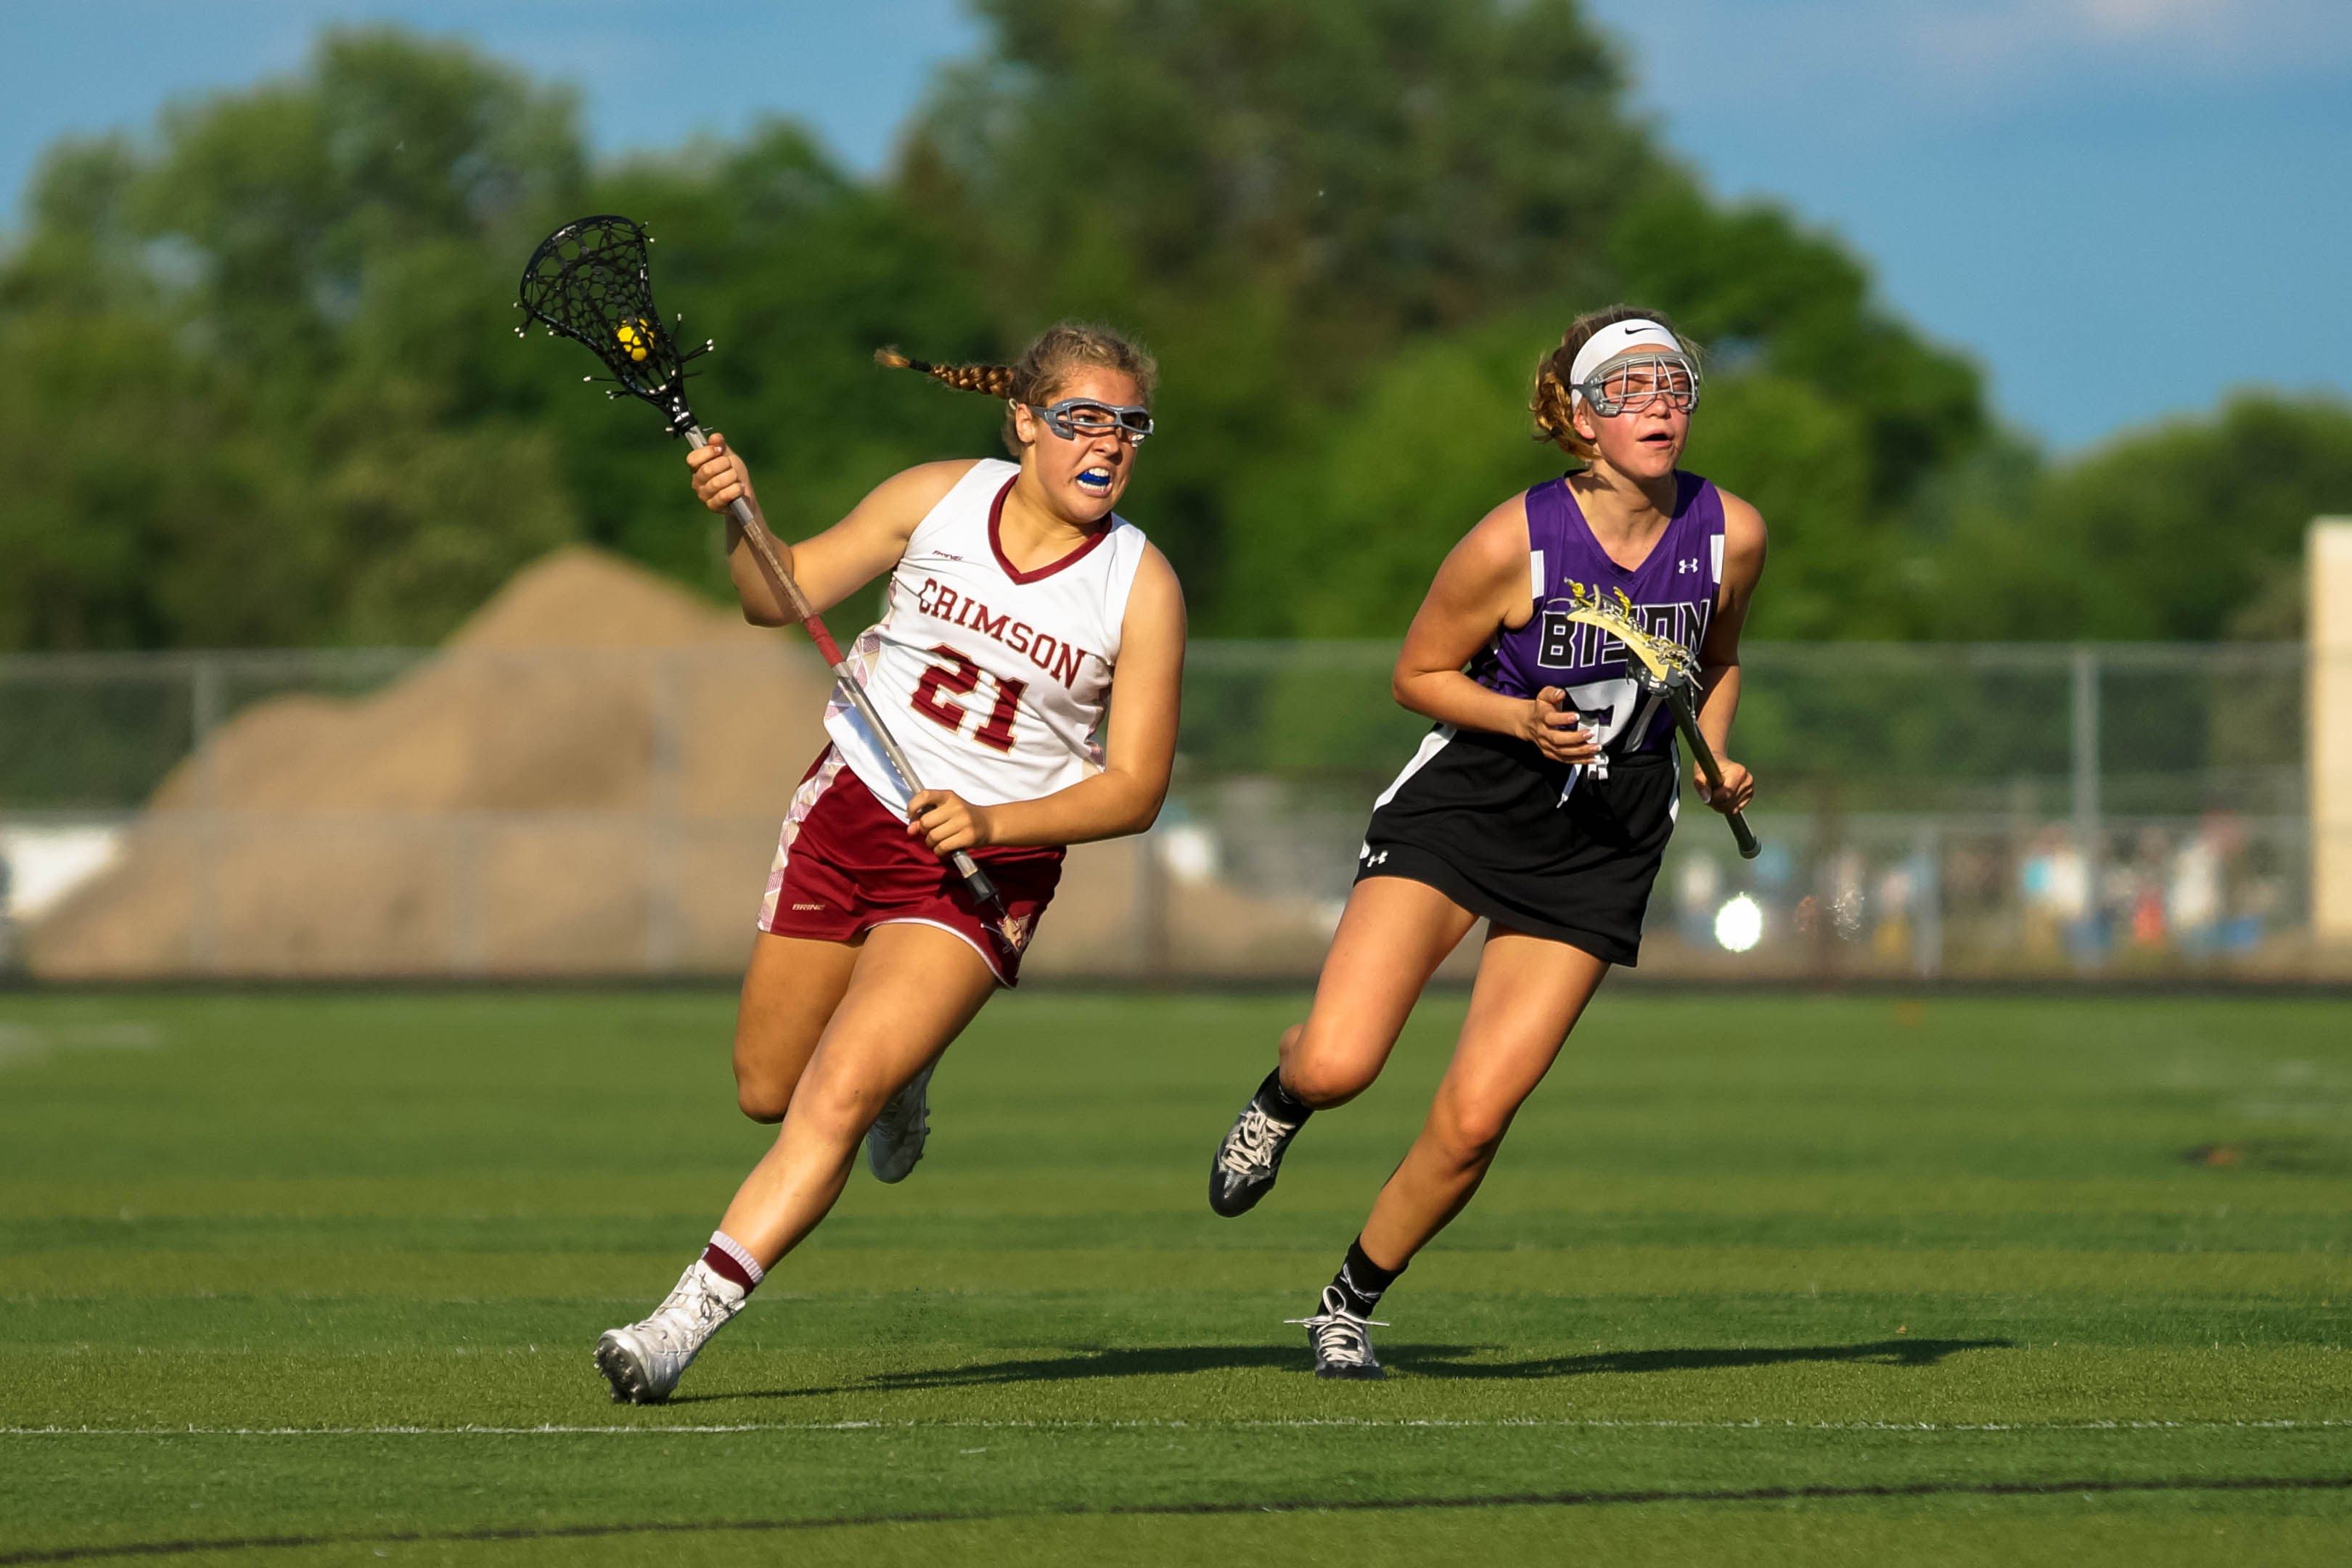 Maple Grove's Tristana Tatur netted three goals in a 9-8 section championship Wednesday over Buffalo. Photo by Korey McDermott, SportsEngine